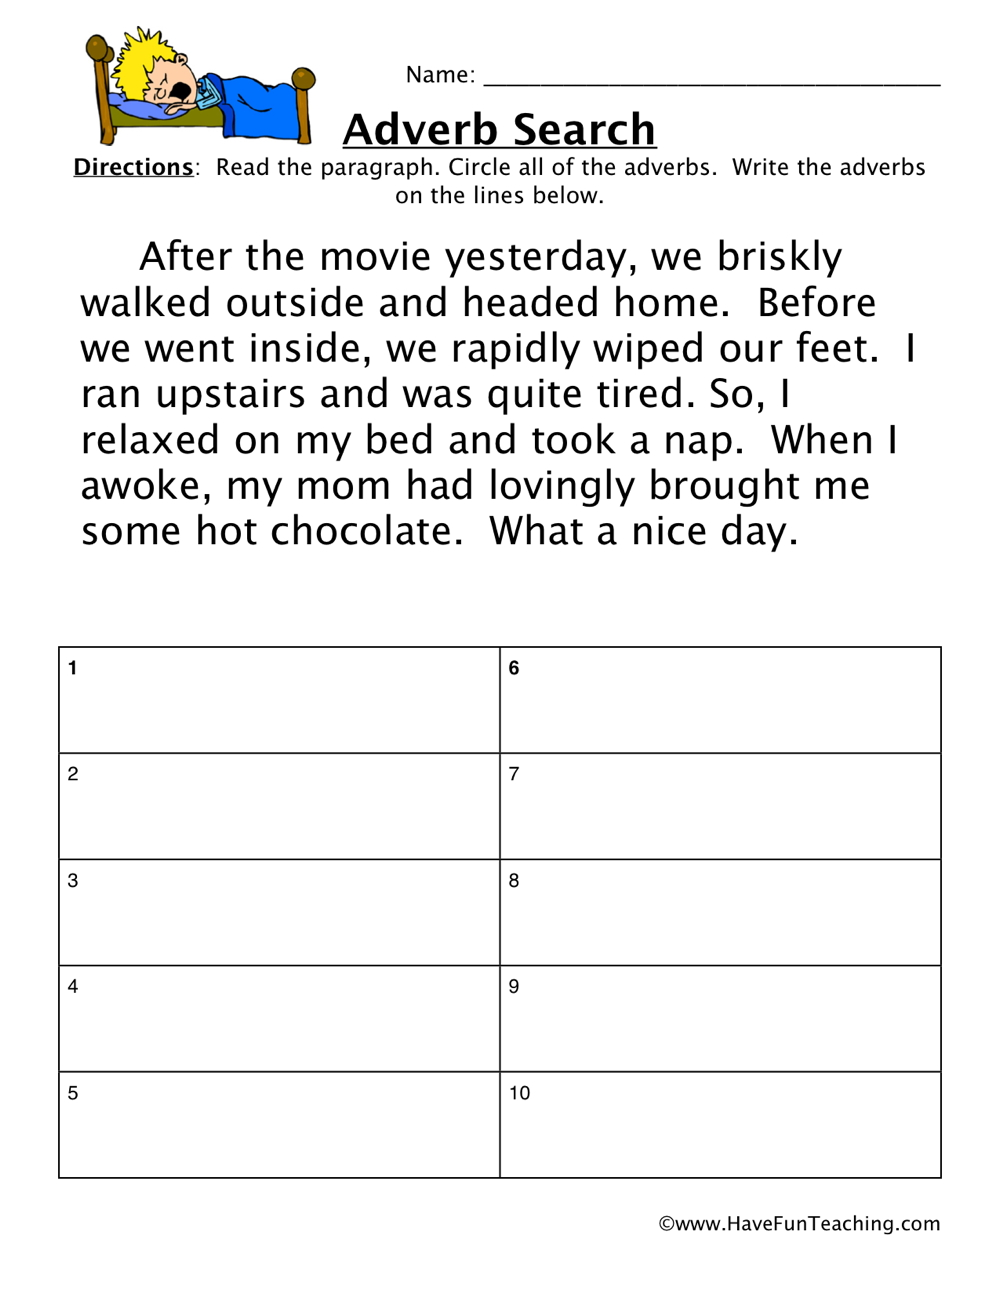 Adverb Worksheet Have Fun Teaching. Adverb Worksheet. Worksheet. Verbs And Adverbs Worksheet Year 6 At Clickcart.co